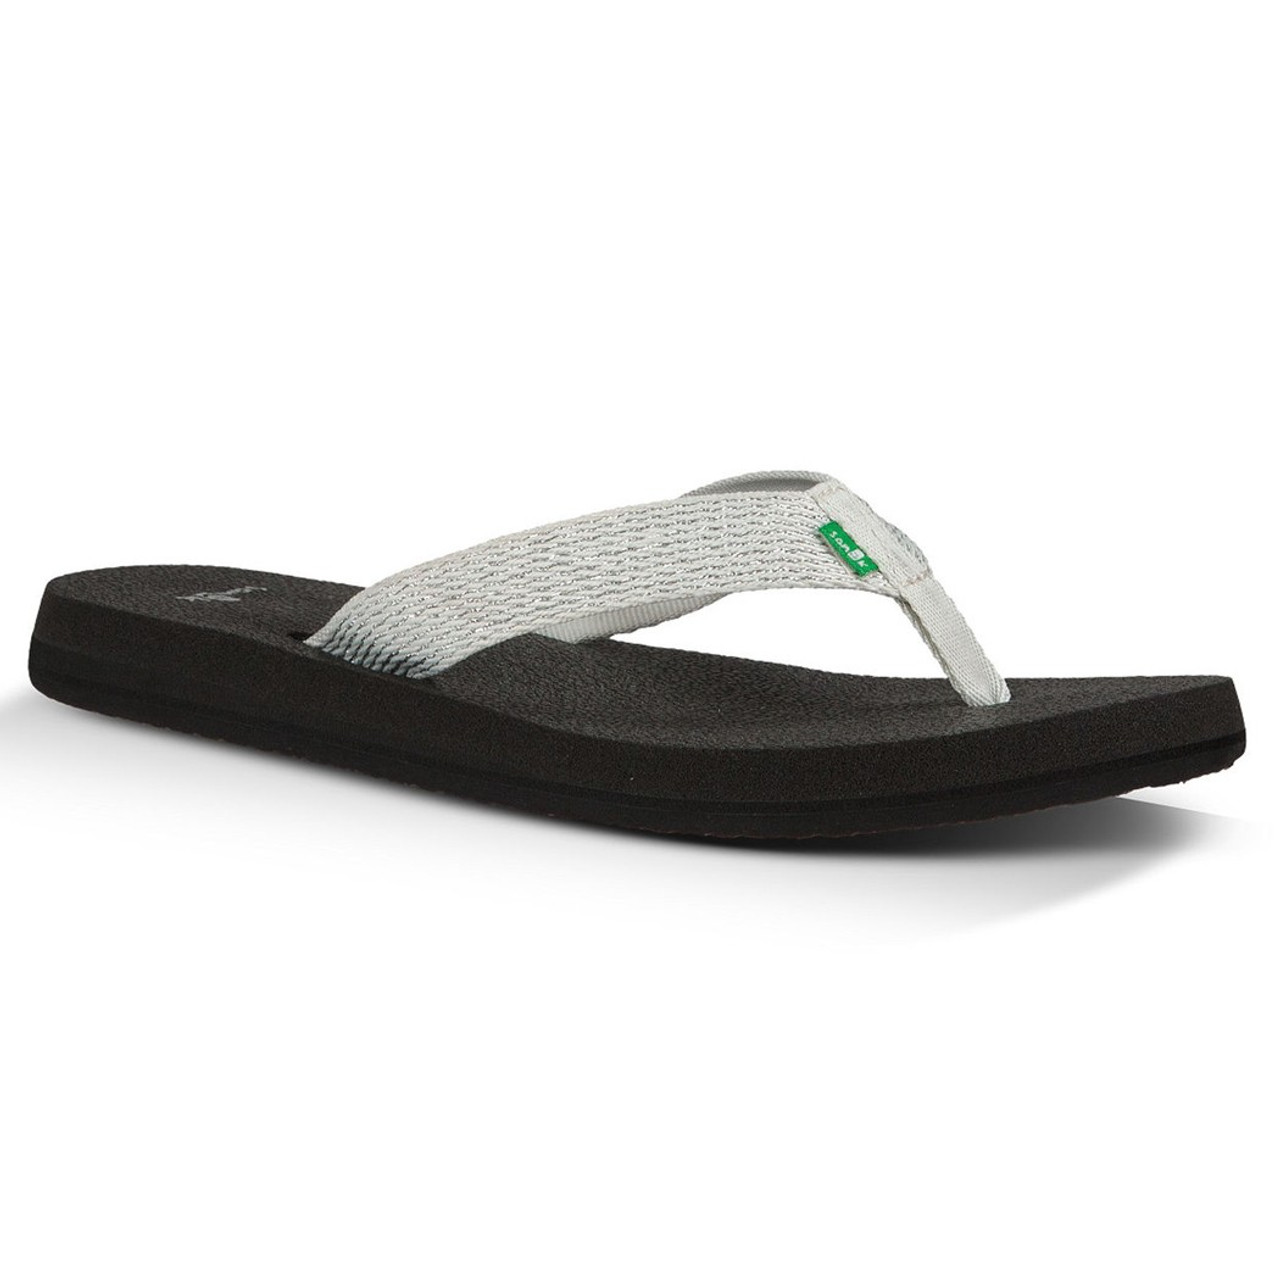 3cda26228 Sanuk Women s Flip Flop - Yoga Mat Web-Bling - Glacier Silver - Surf and  Dirt